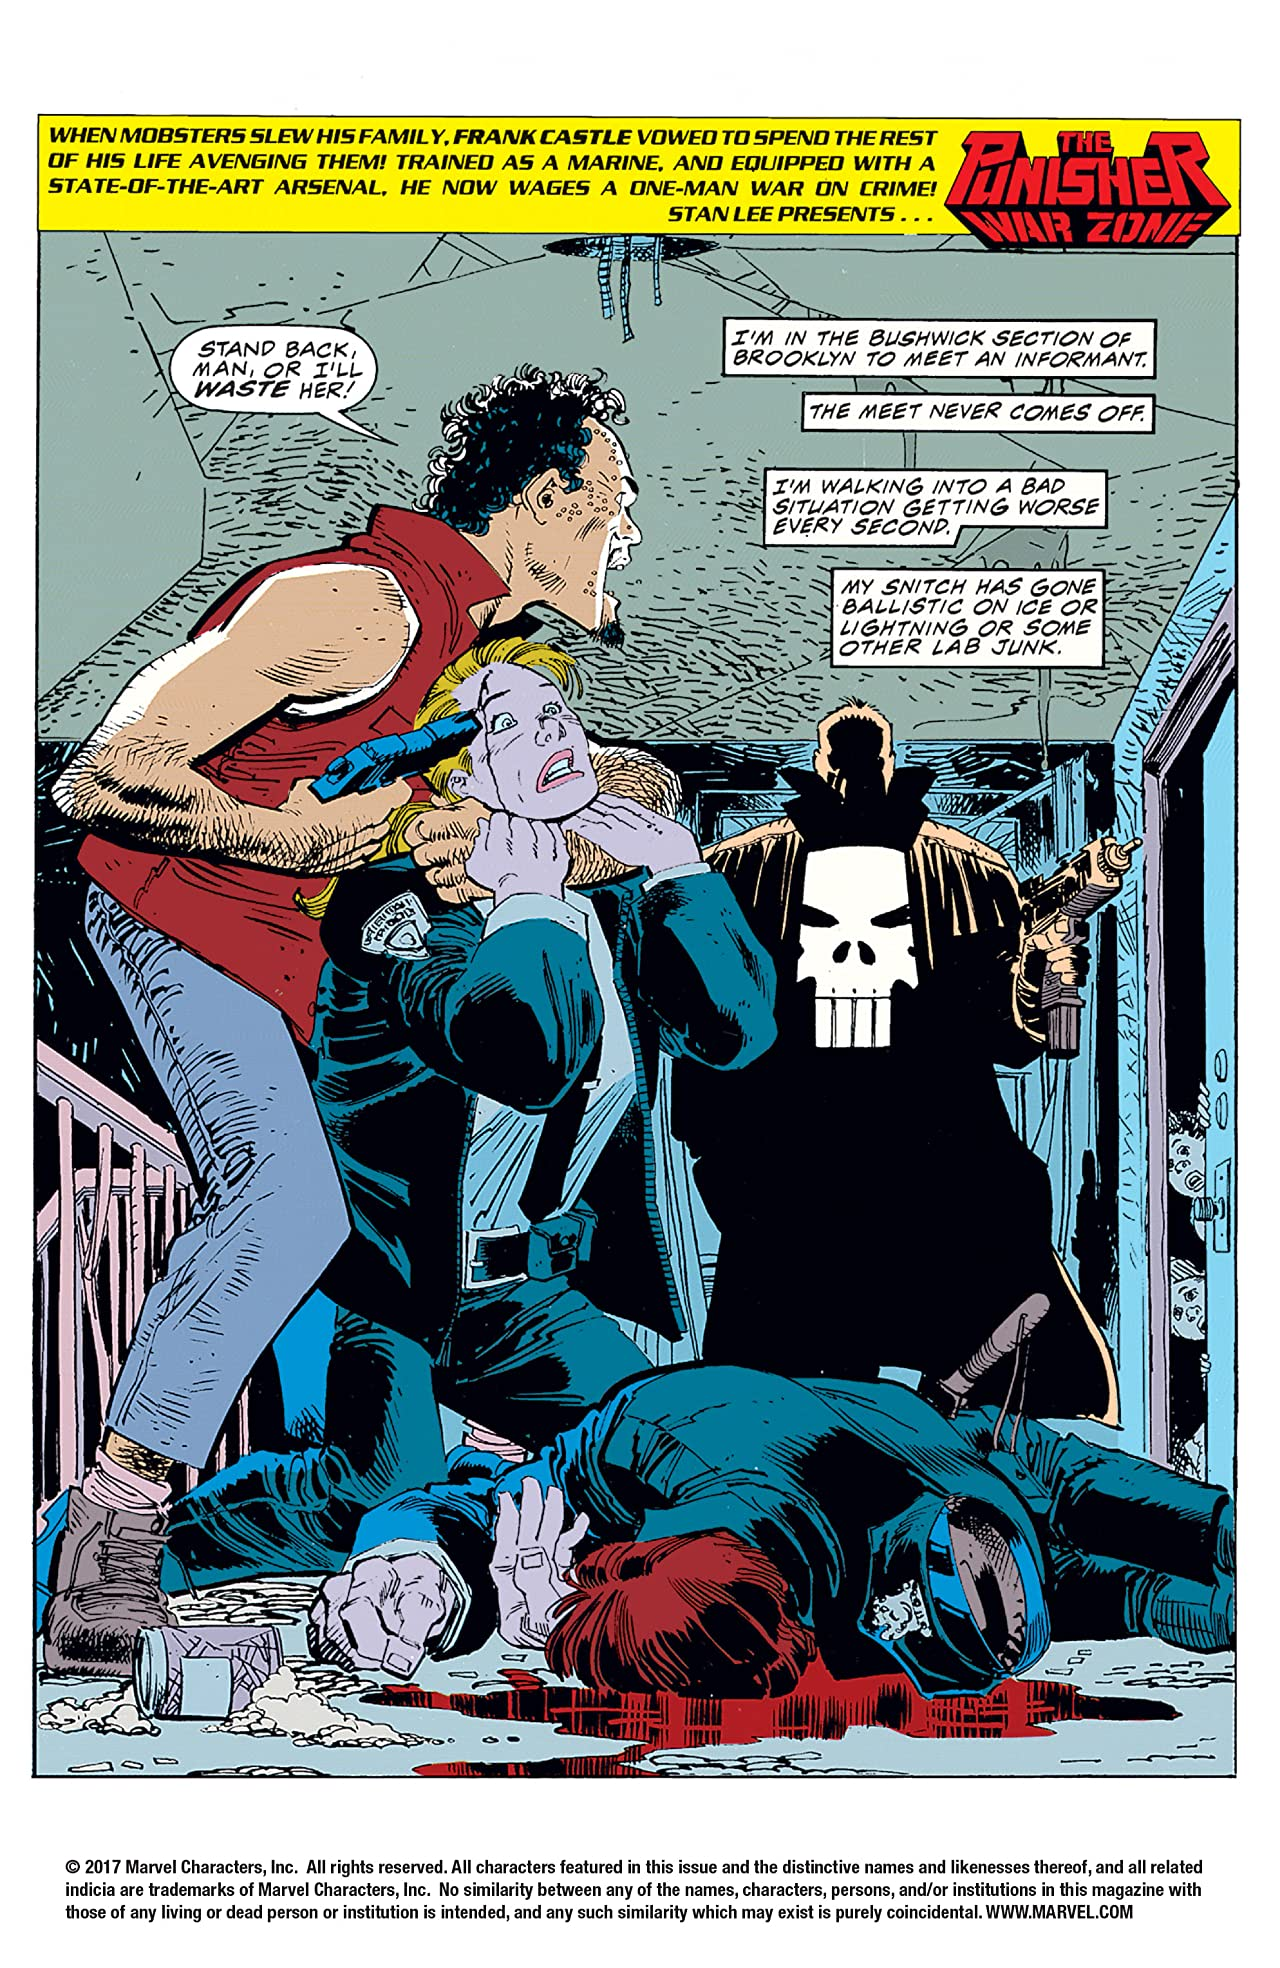 The Punisher: War Zone (1992-1995) #1